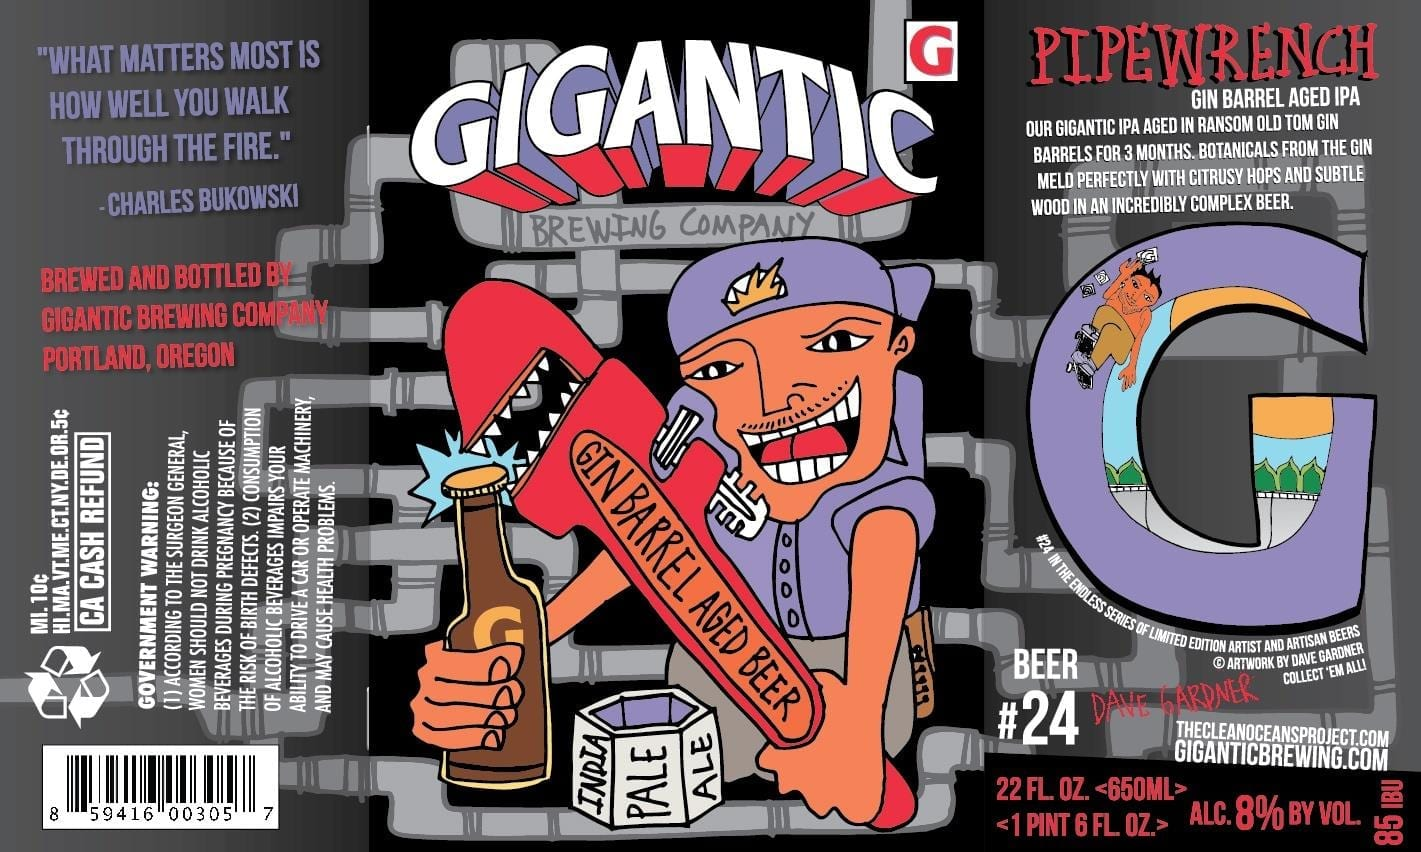 Gigantic Brewing Pipewrench